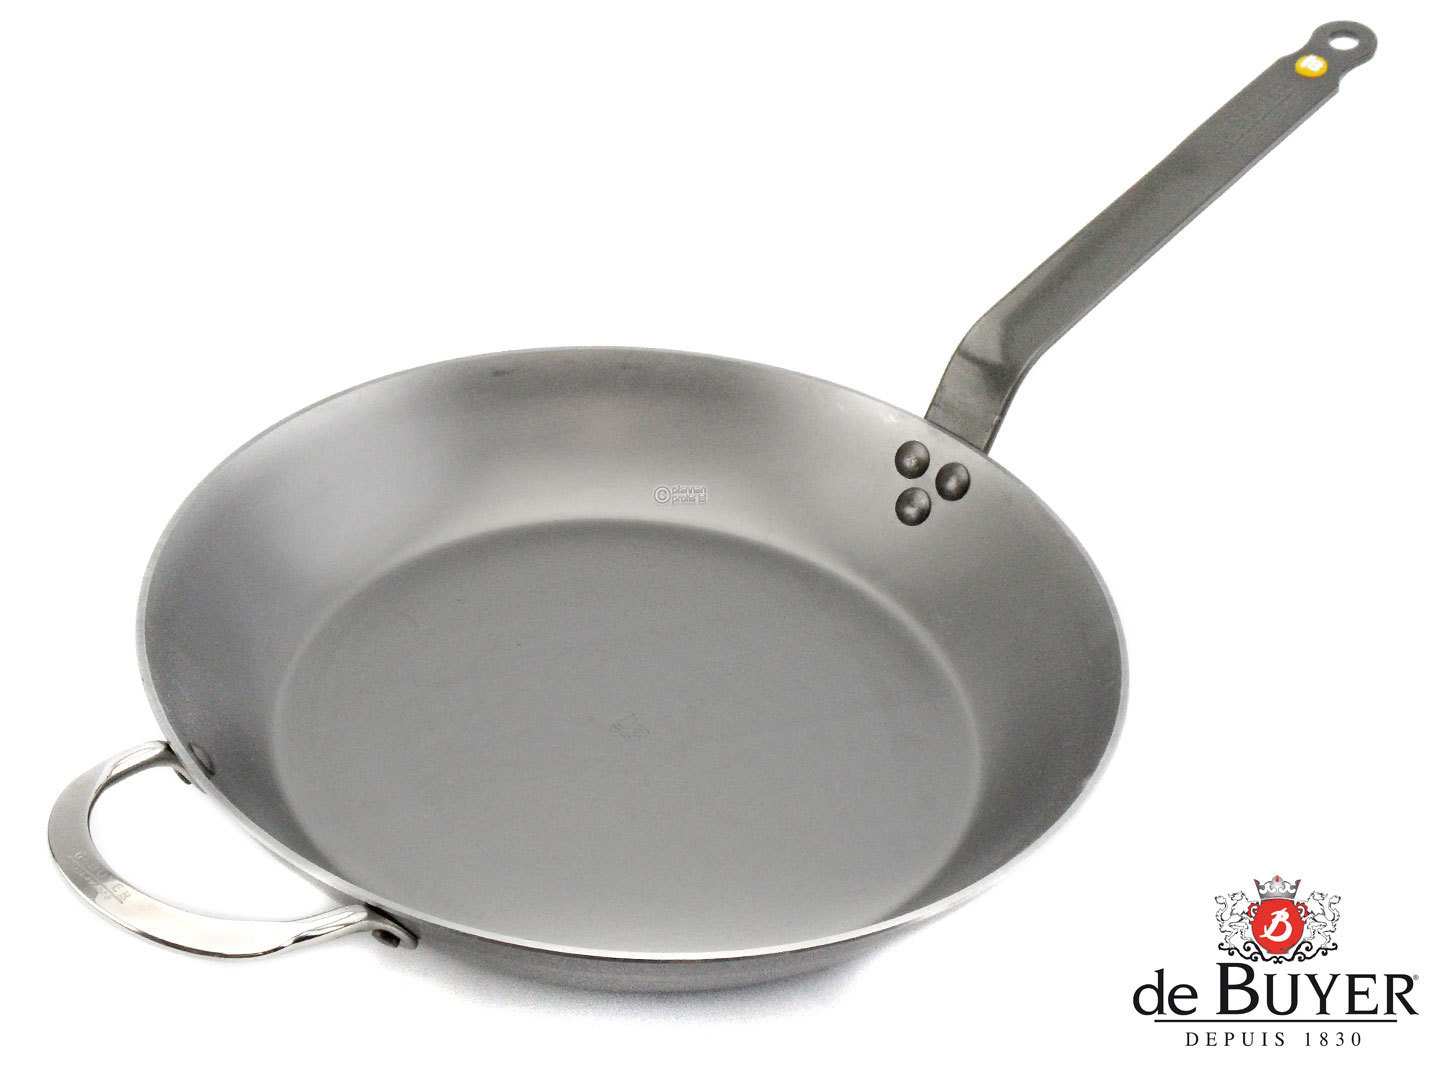 DE BUYER iron pan MINERAL B ELEMENT 32 cm frypan